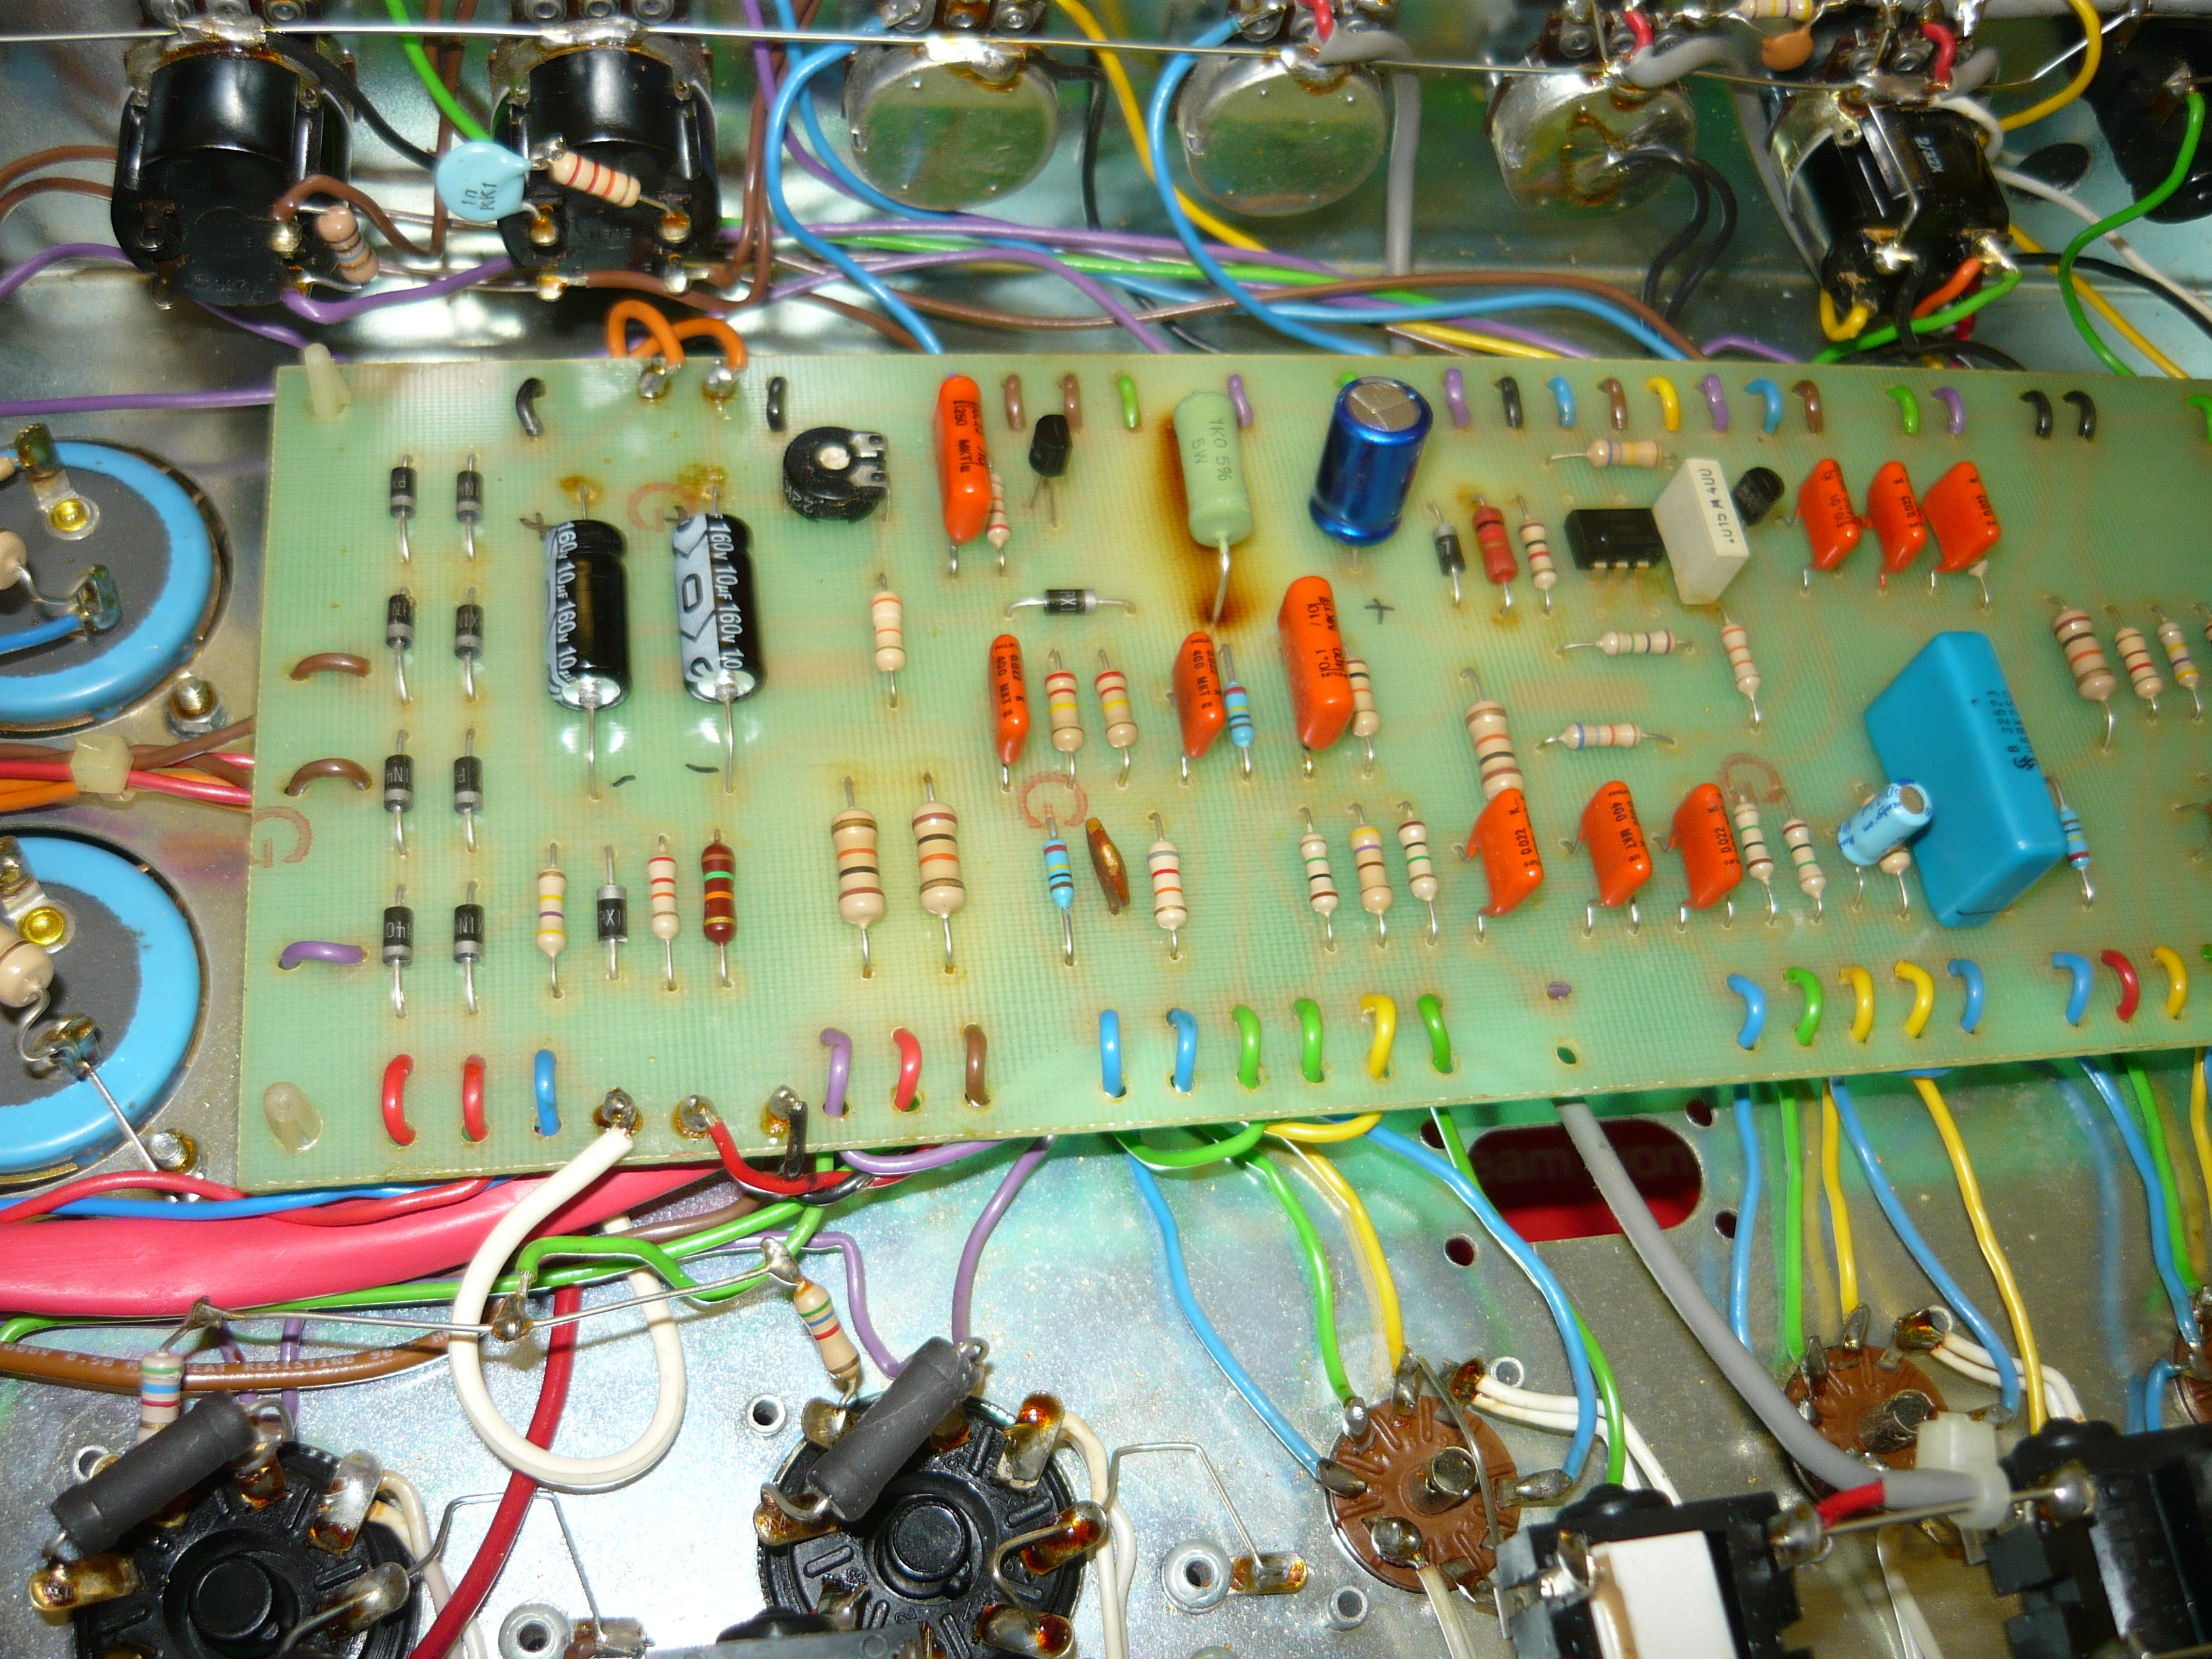 Amp Repair Ivanrichards Page 2 Vox Ac15 Schematic Additionally Passive Tone Control Circuit Besides Repairs Completed And Board Reinstalled